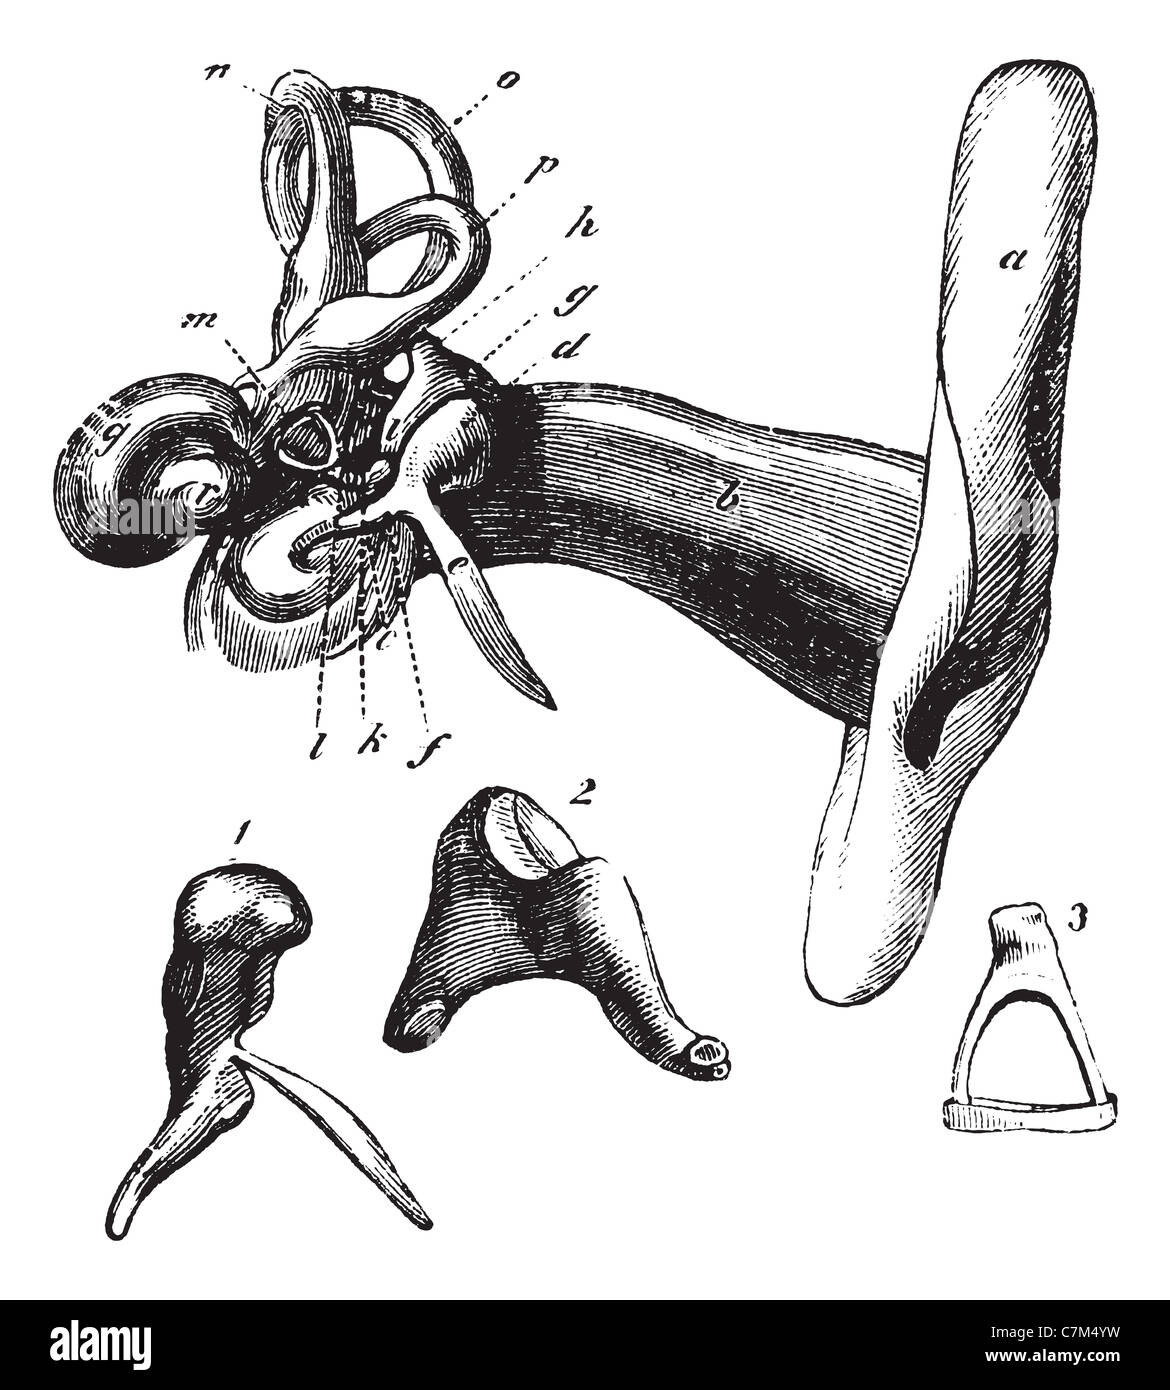 Human Ear Anatomy Or Parts Of The Hearing Aid Vintage